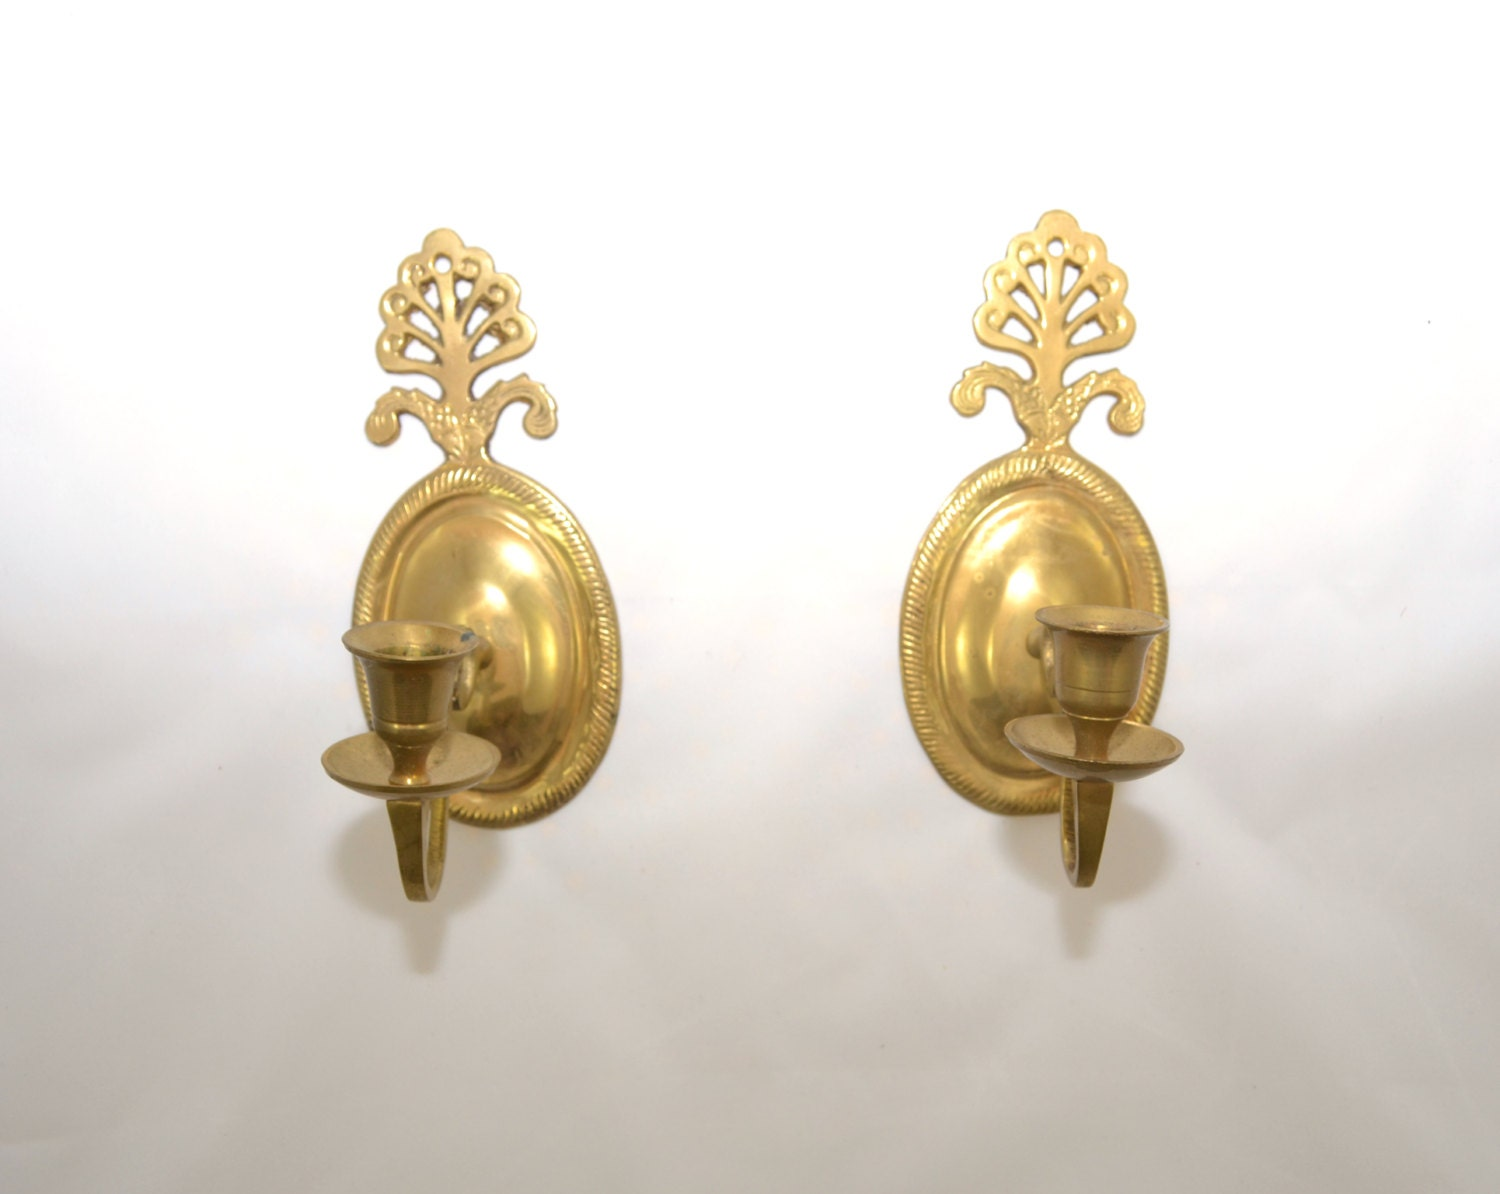 Candle Holder Wall Sconce Brass Wall Sconce Candle Holders Art